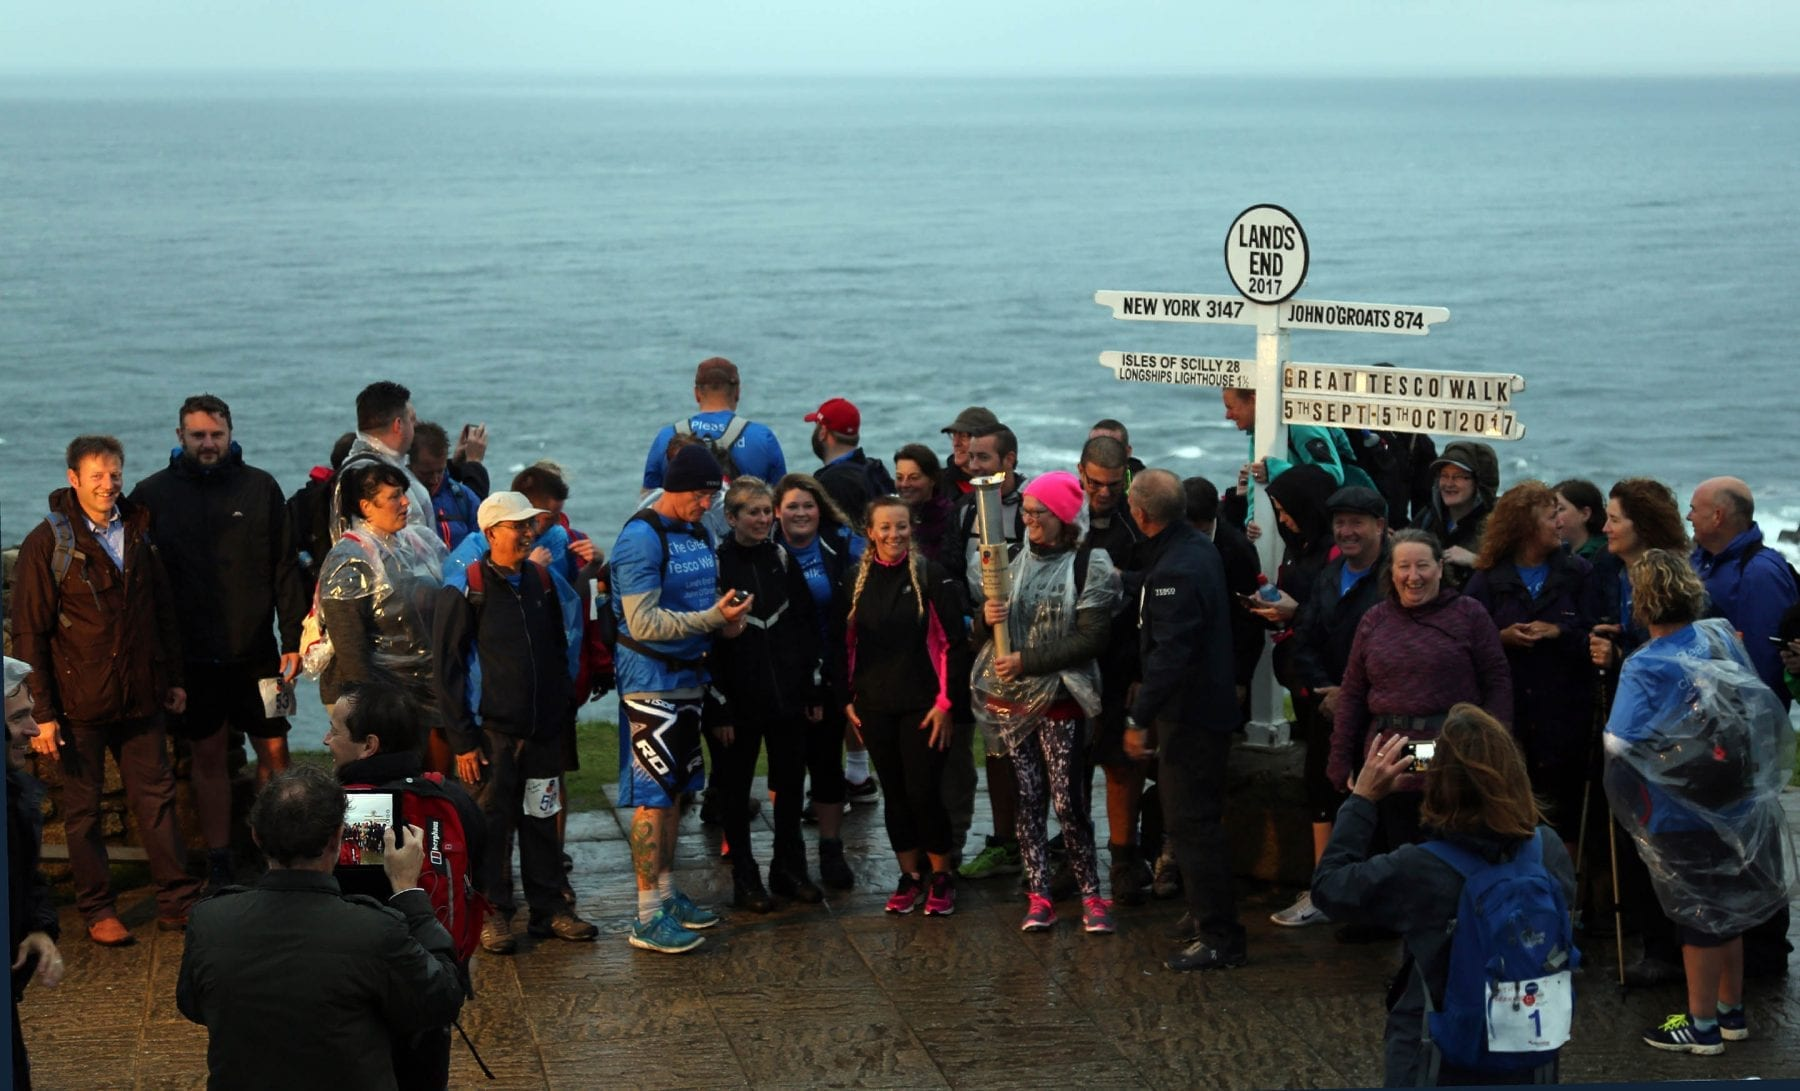 The Great Tesco Walk starts at Land's End